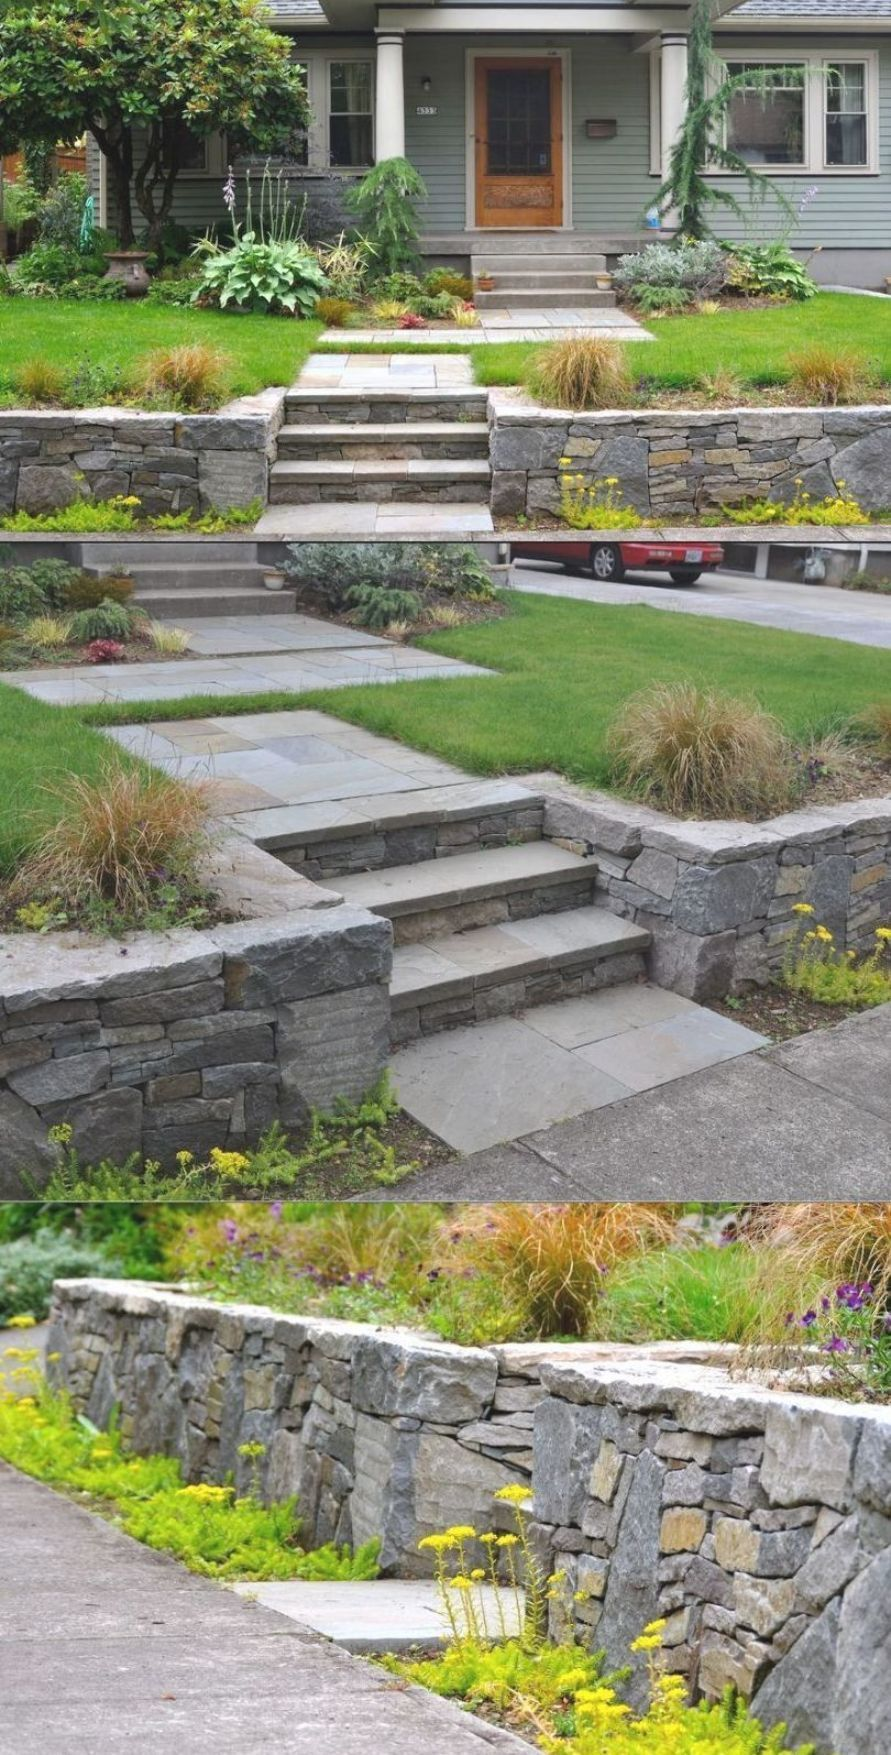 25 Retaining Wall Ideas For Any Types Of Terrain And Landscapes In 2020 Retaining Wall Design Landscape Design Concrete Retaining Walls